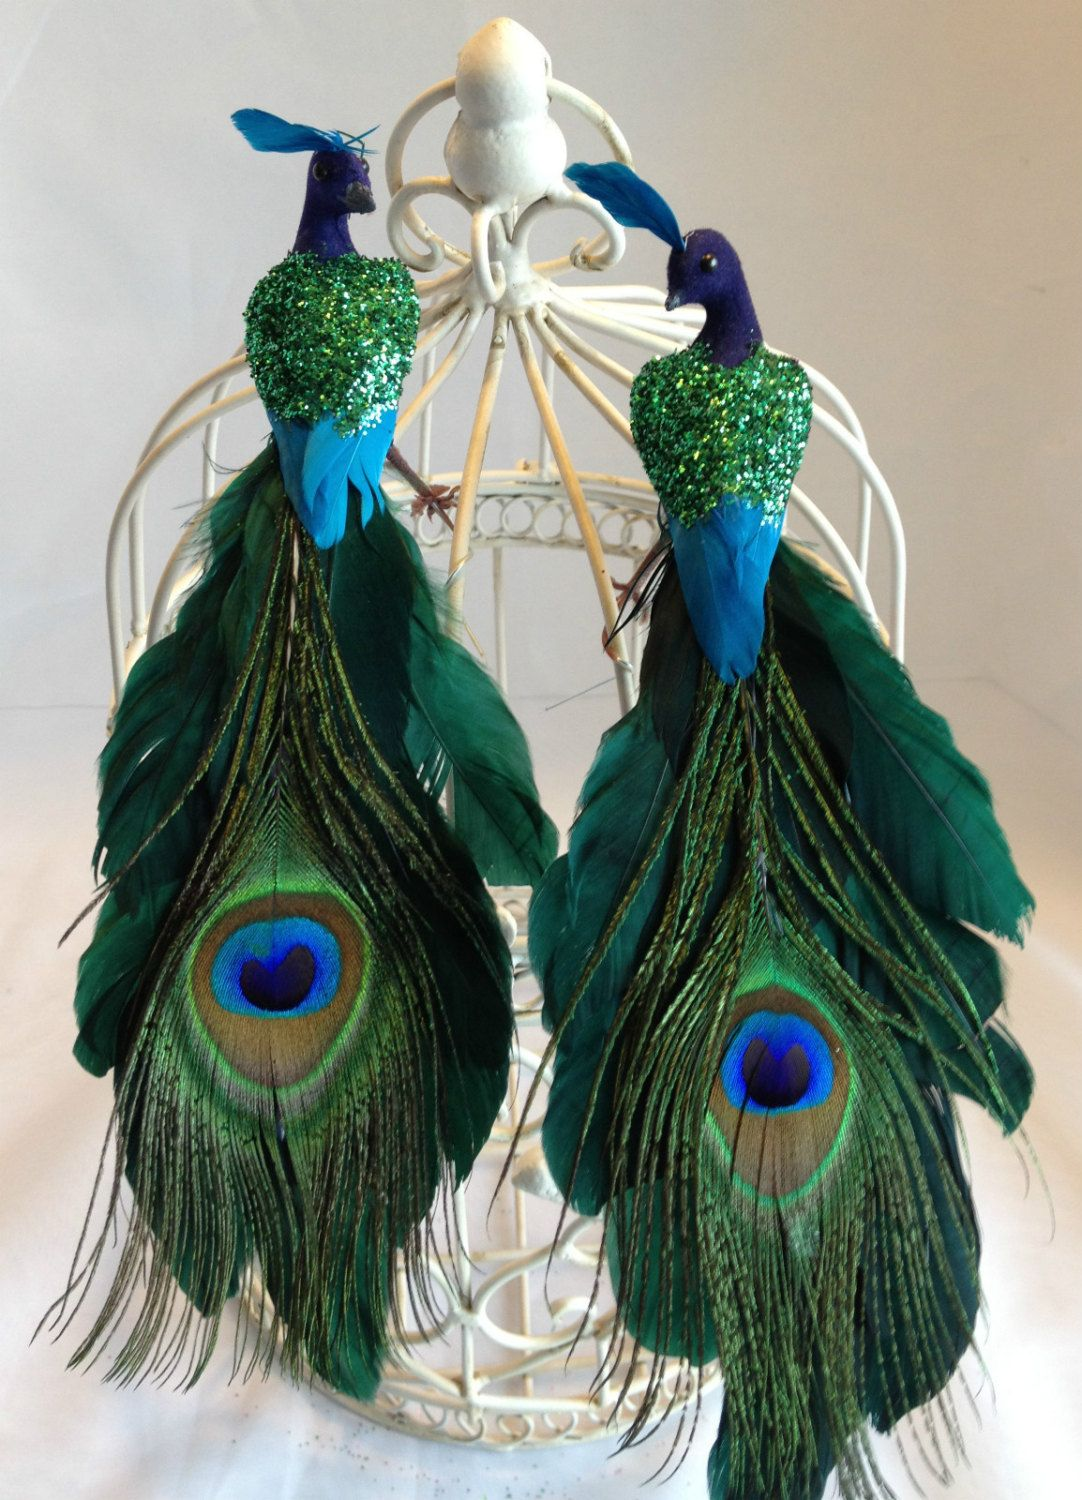 Chic Christmas 2 Green Glitter Peacock Ornament By